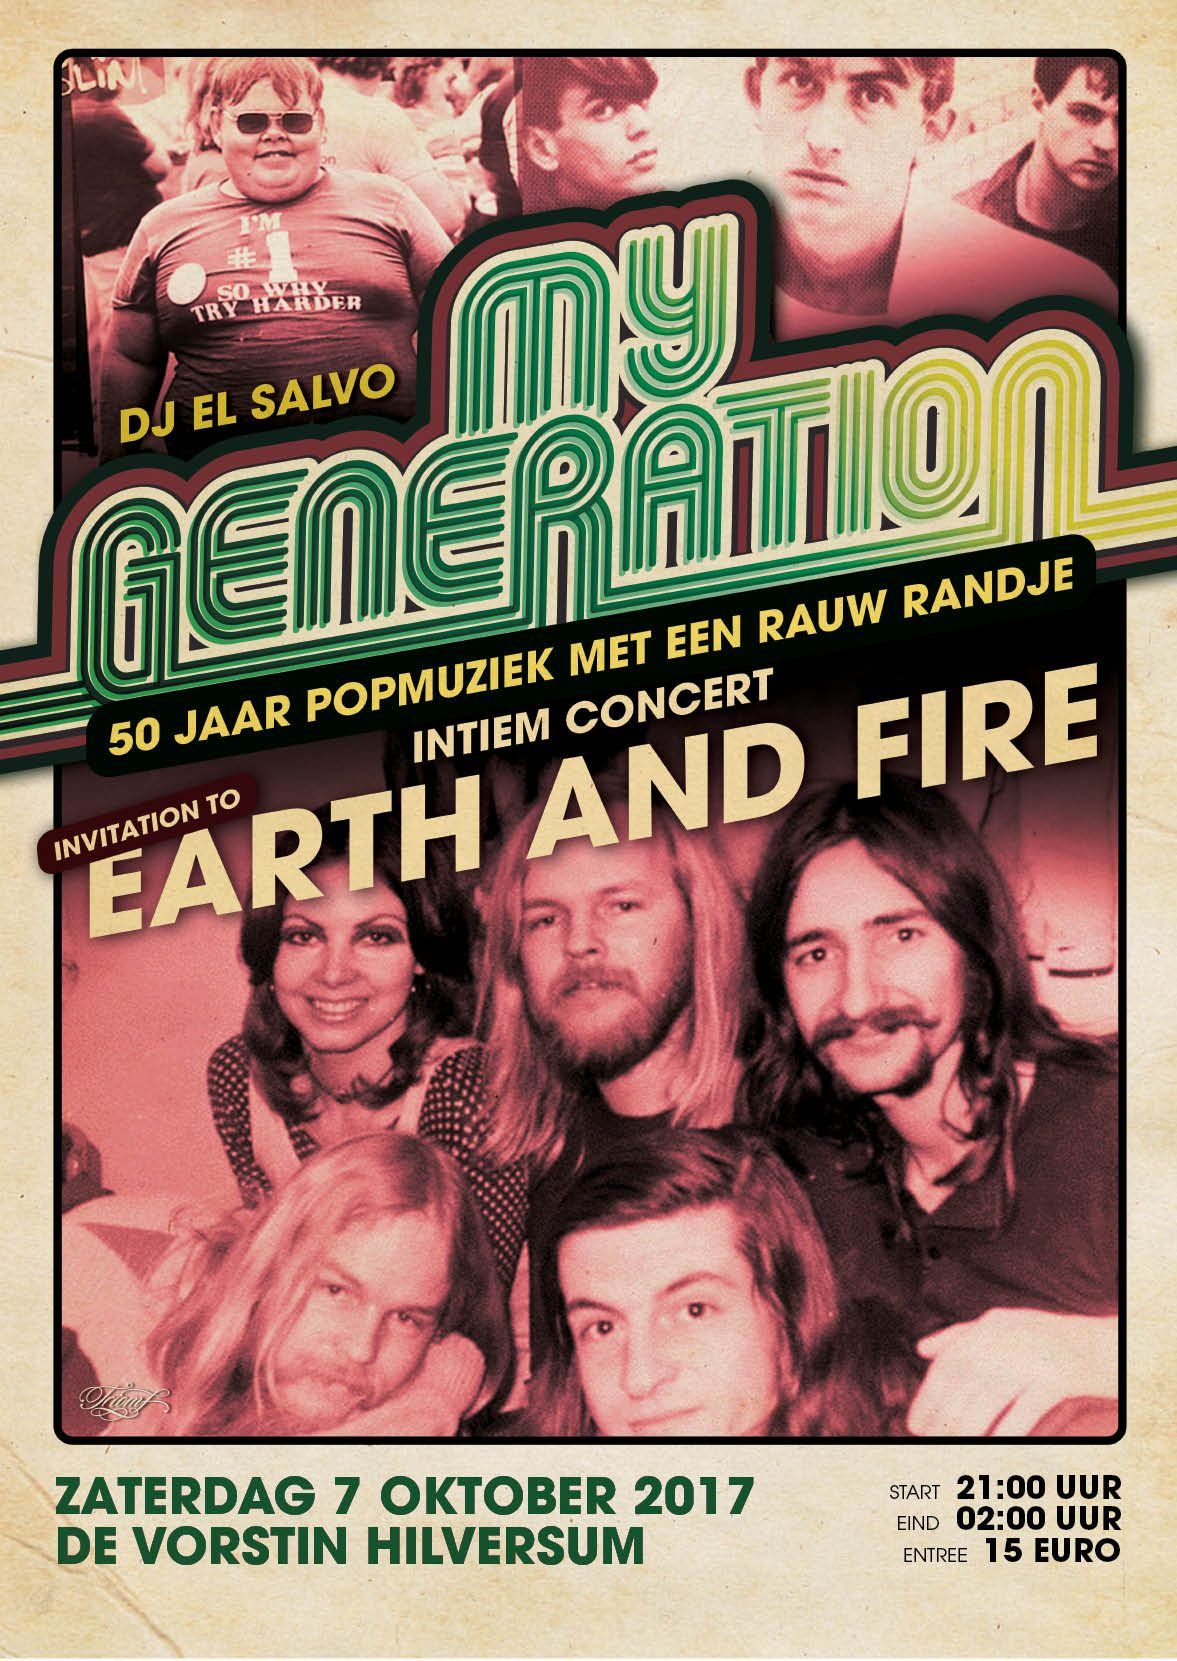 MY GENERATION INVITATION TO EARTH  FIRE